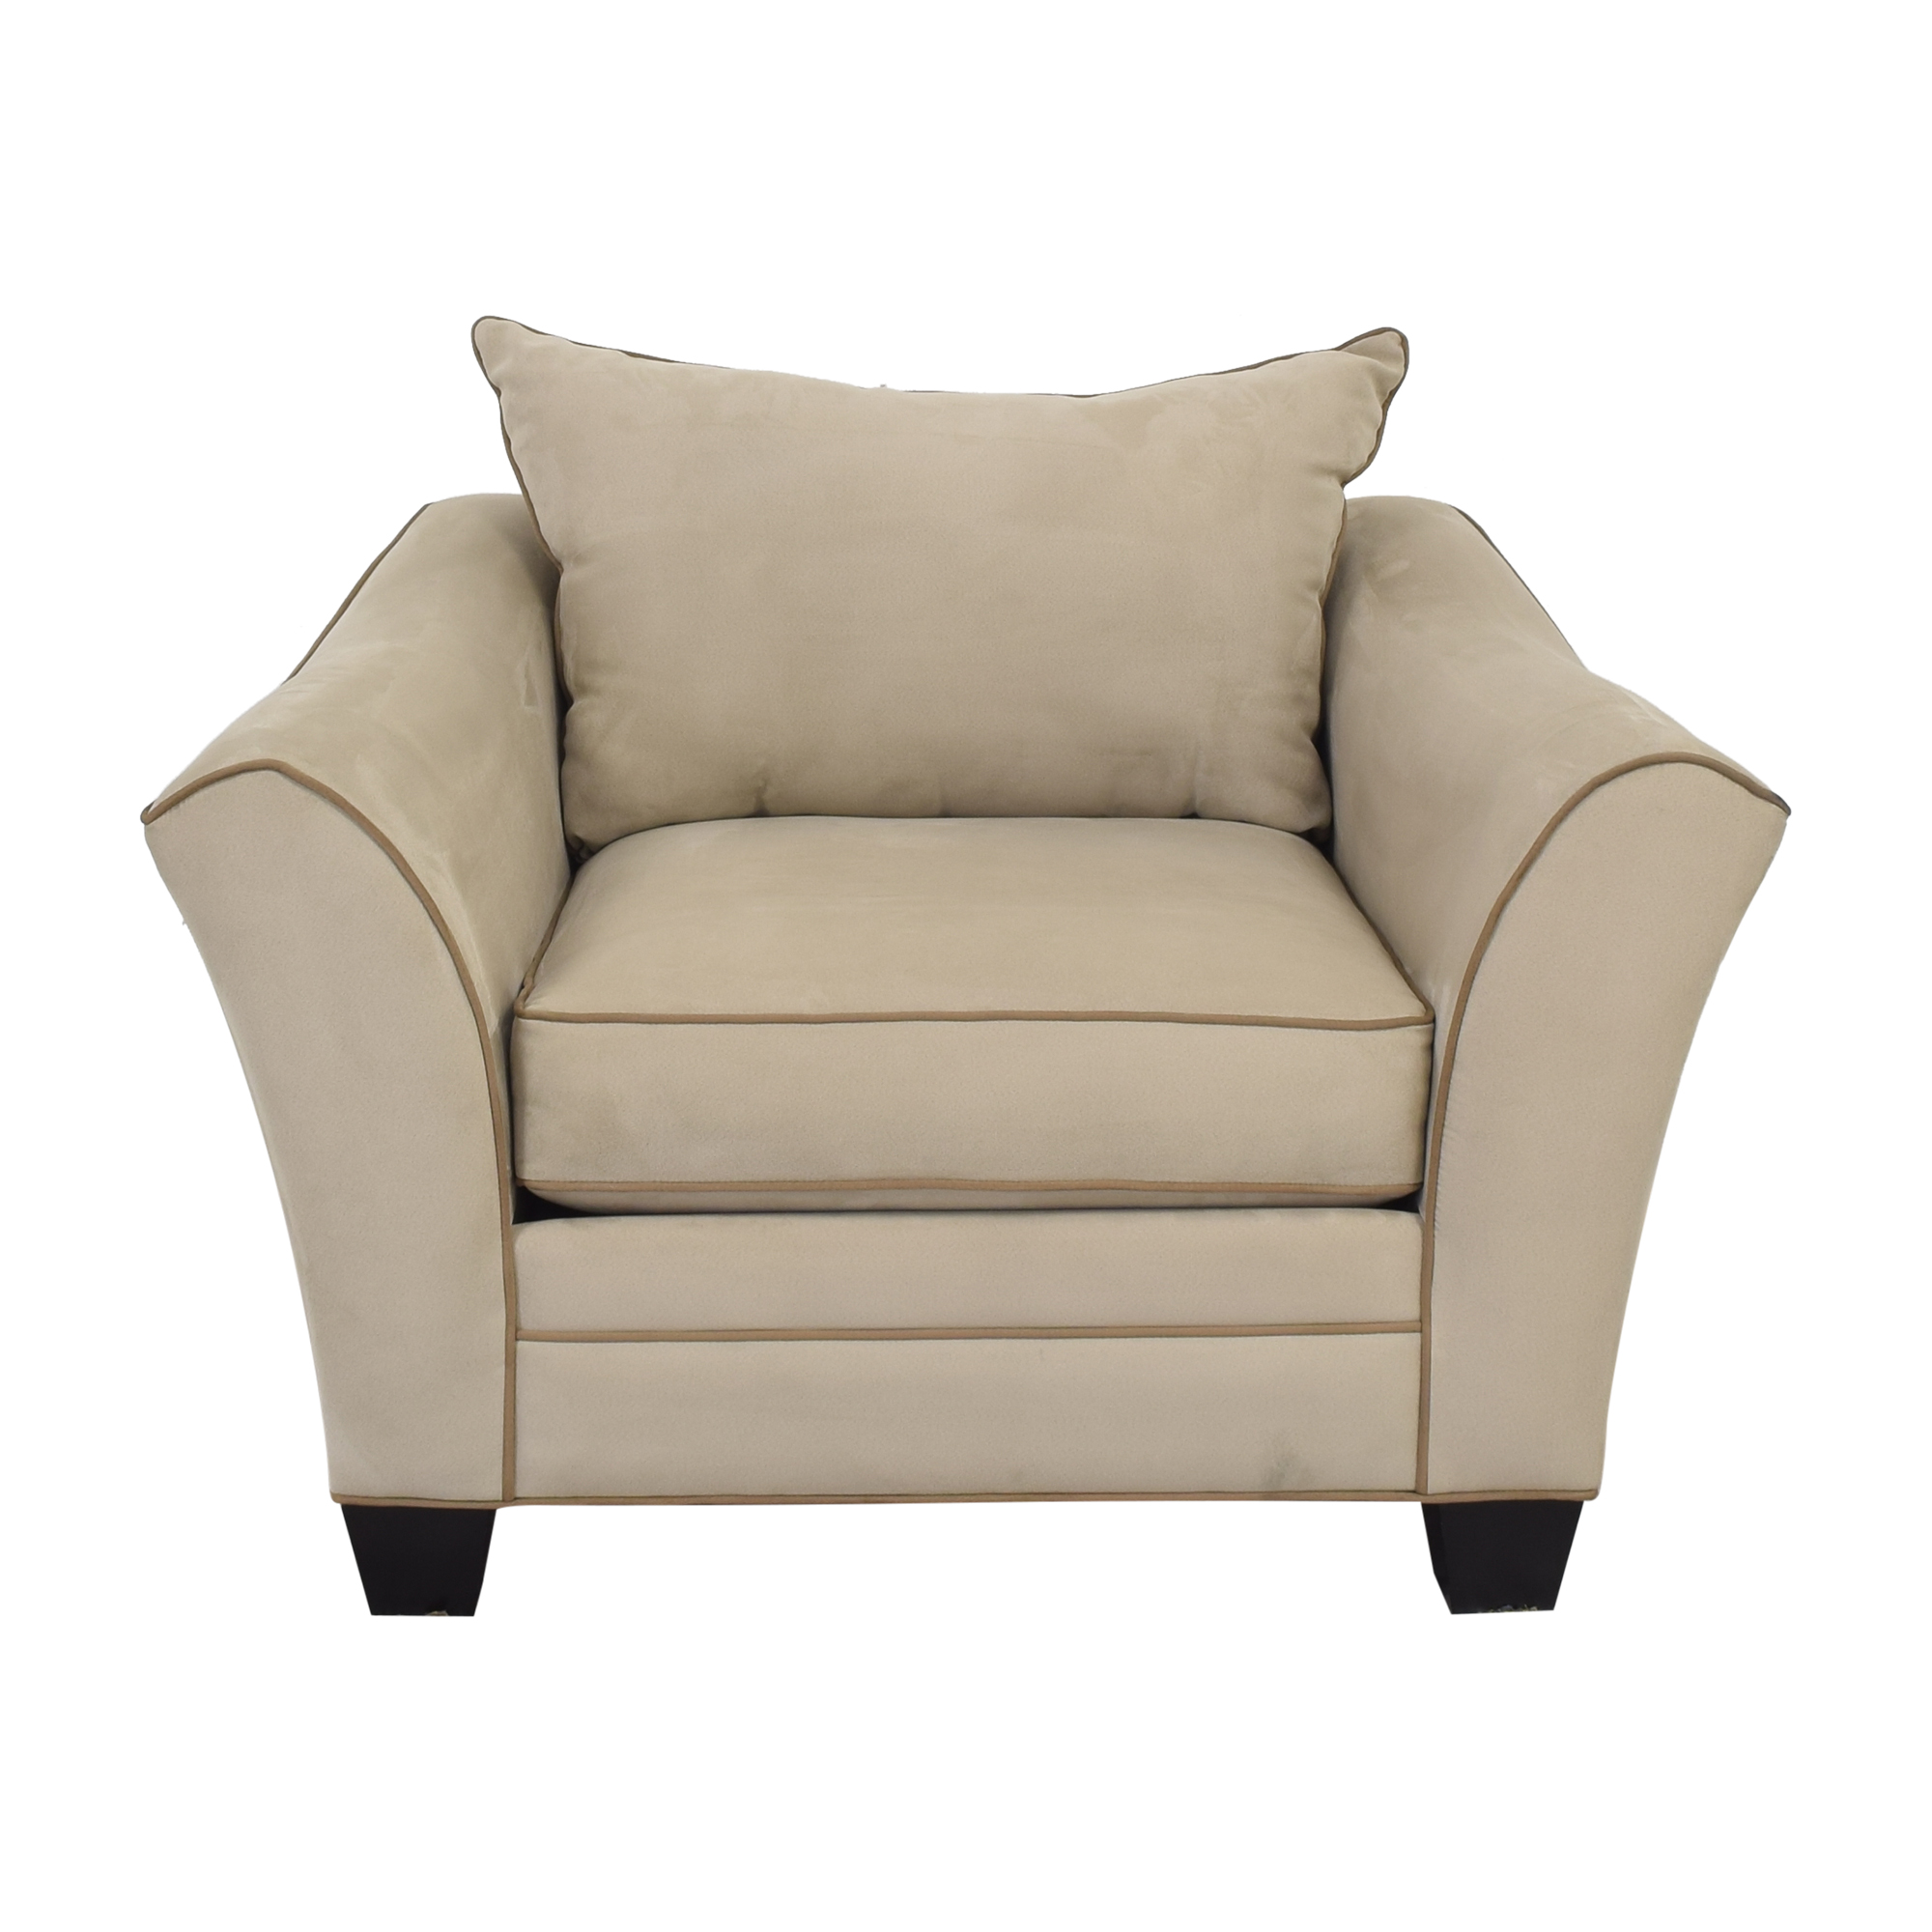 shop Raymour & Flanigan Lounge Chair Raymour & Flanigan